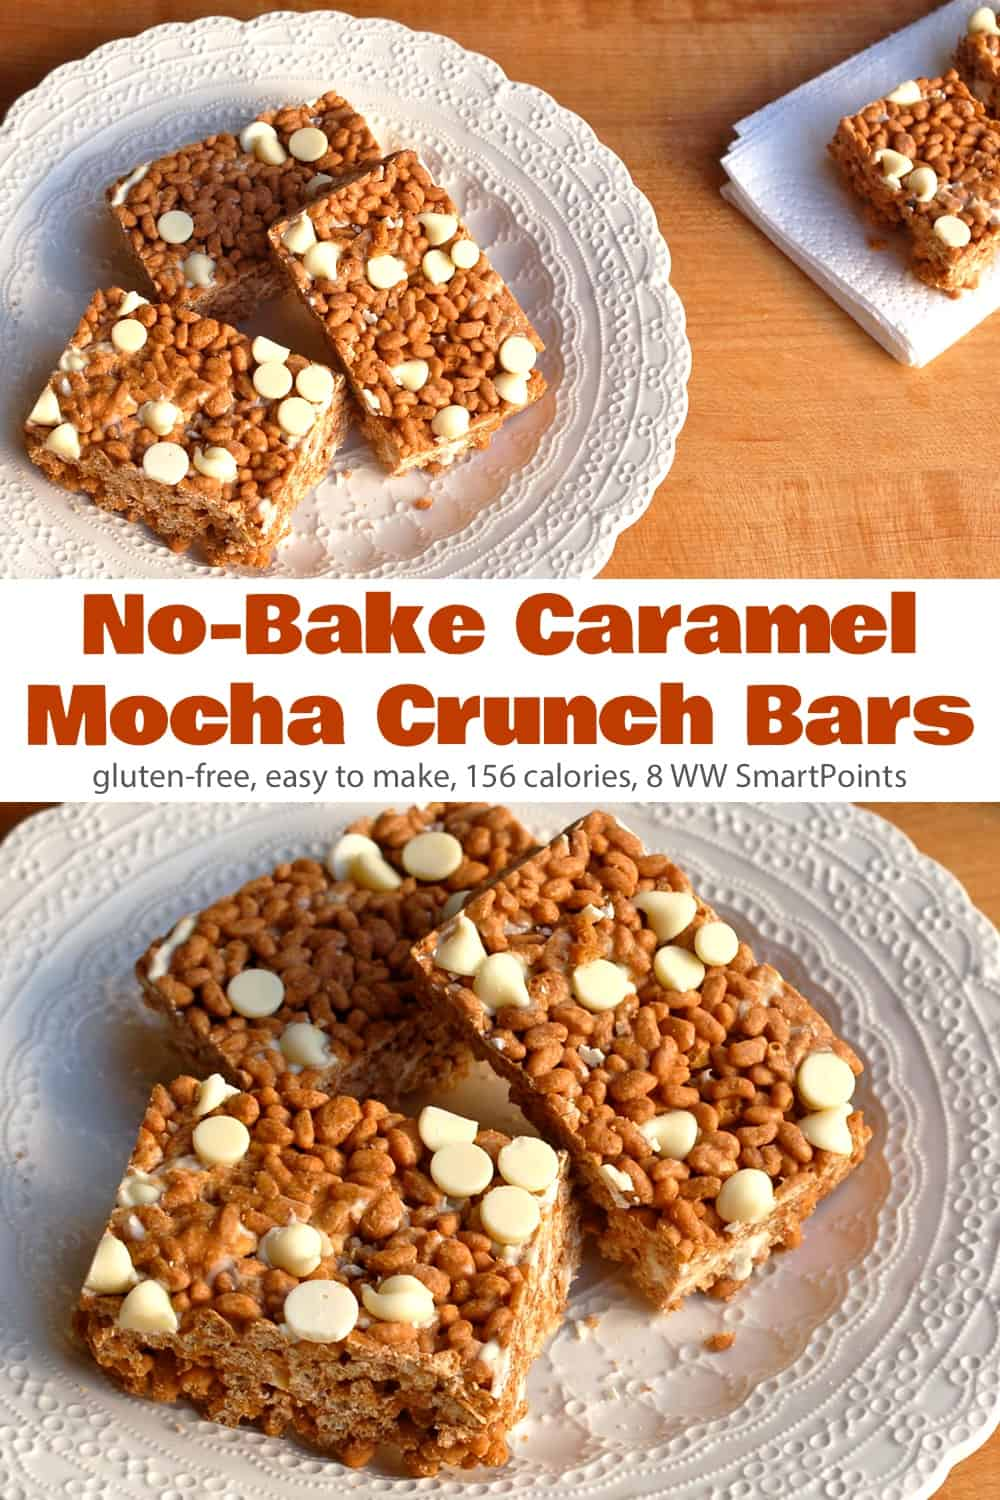 I used my slow cooker to melt together the caramel mixture for these incredibly rich and delicious slow cooker caramel mocha crunch bars, which are essentially a sophisticated variation of everybody's favorite Rice Krispie Treats! #nobakecaramelmochacrunchbars #ricekrispietreats #dessert